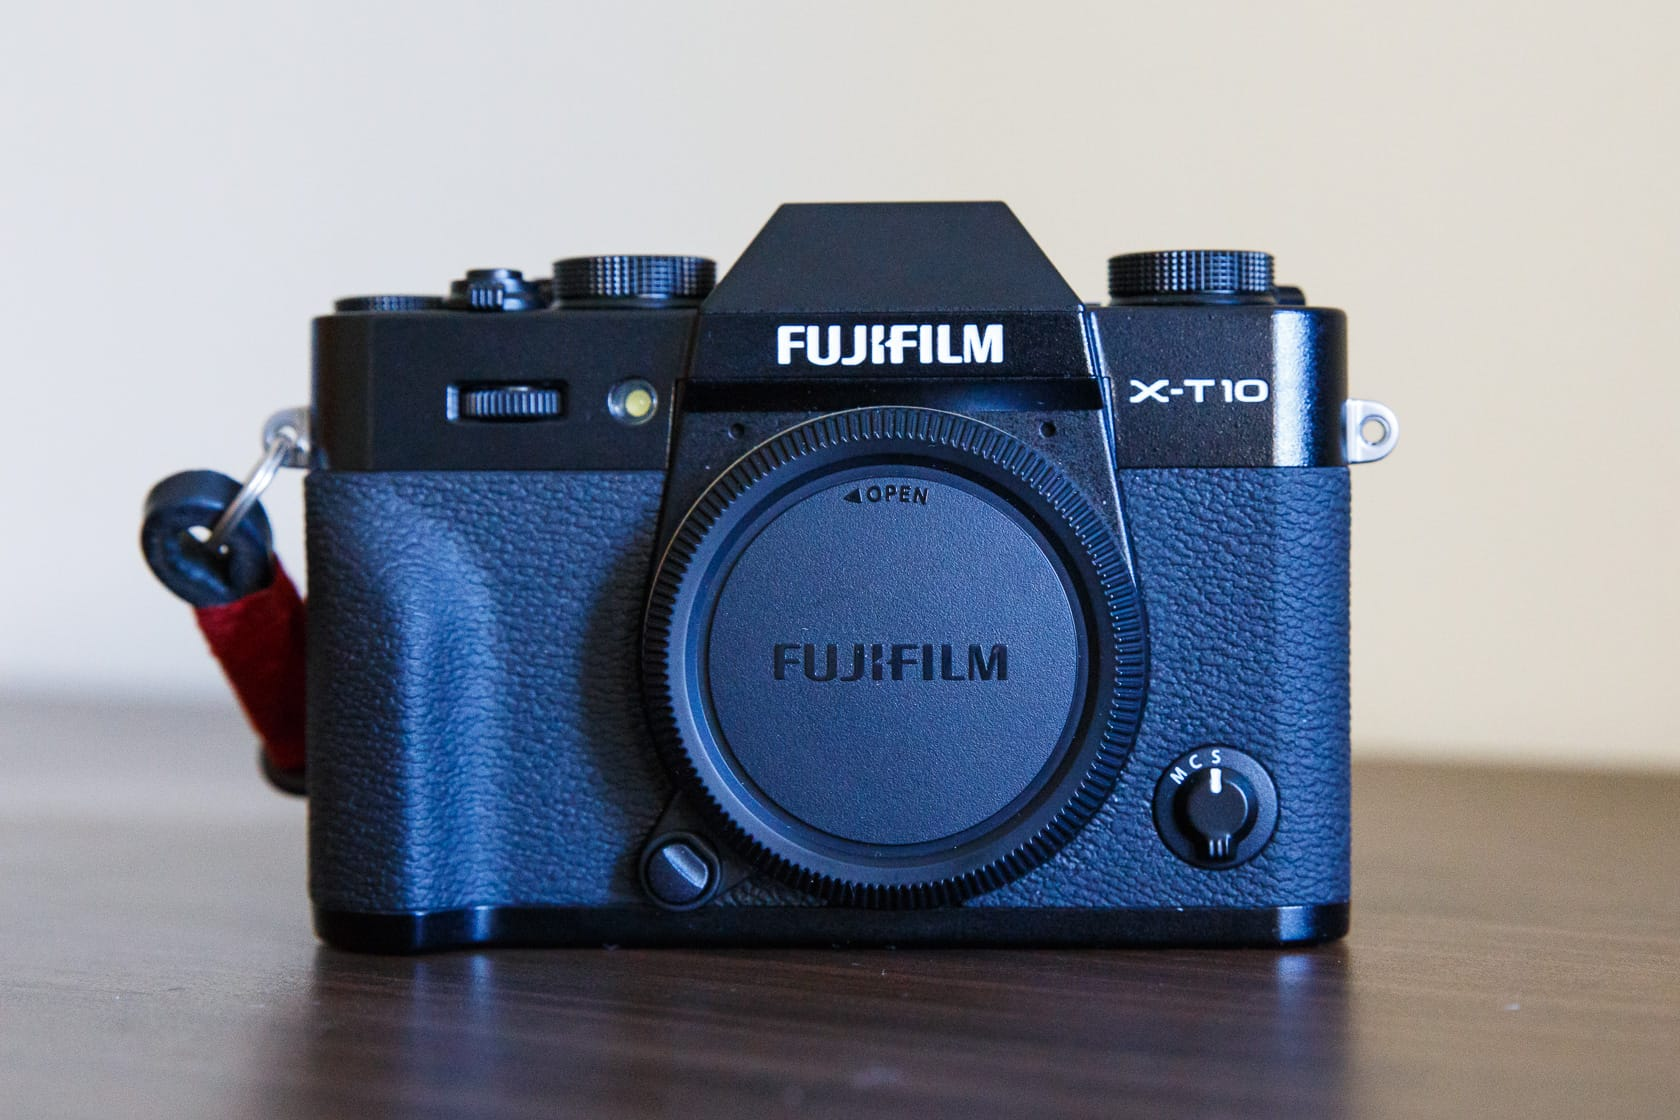 The Fujifilm X T10 For Street Photography Hunters Camera X100s Iphone 5 Custom Hard Case Is A Good Like T1 It Performs Very Well As An All Around Excellent Autofocus And Small Size Makes Great